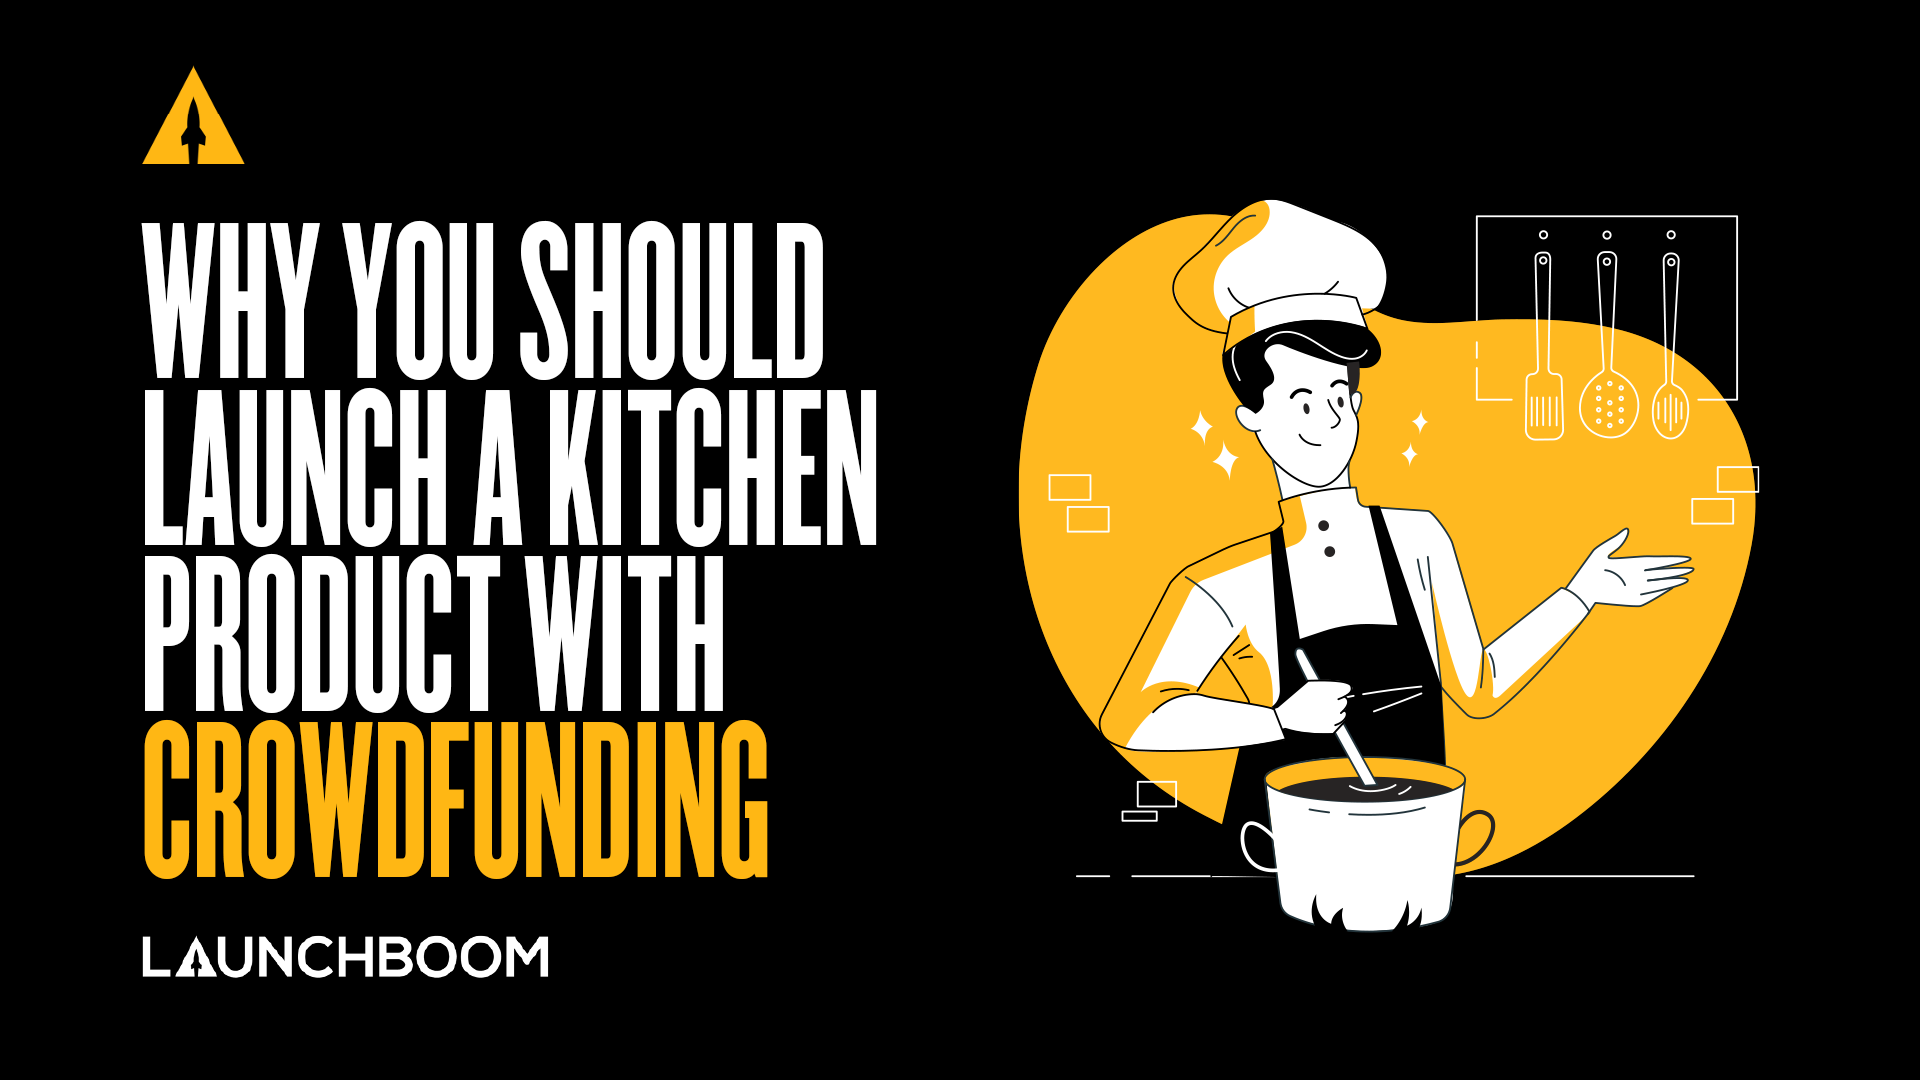 Why kitchen brands want to launch through crowdfunding, not kitchen stores